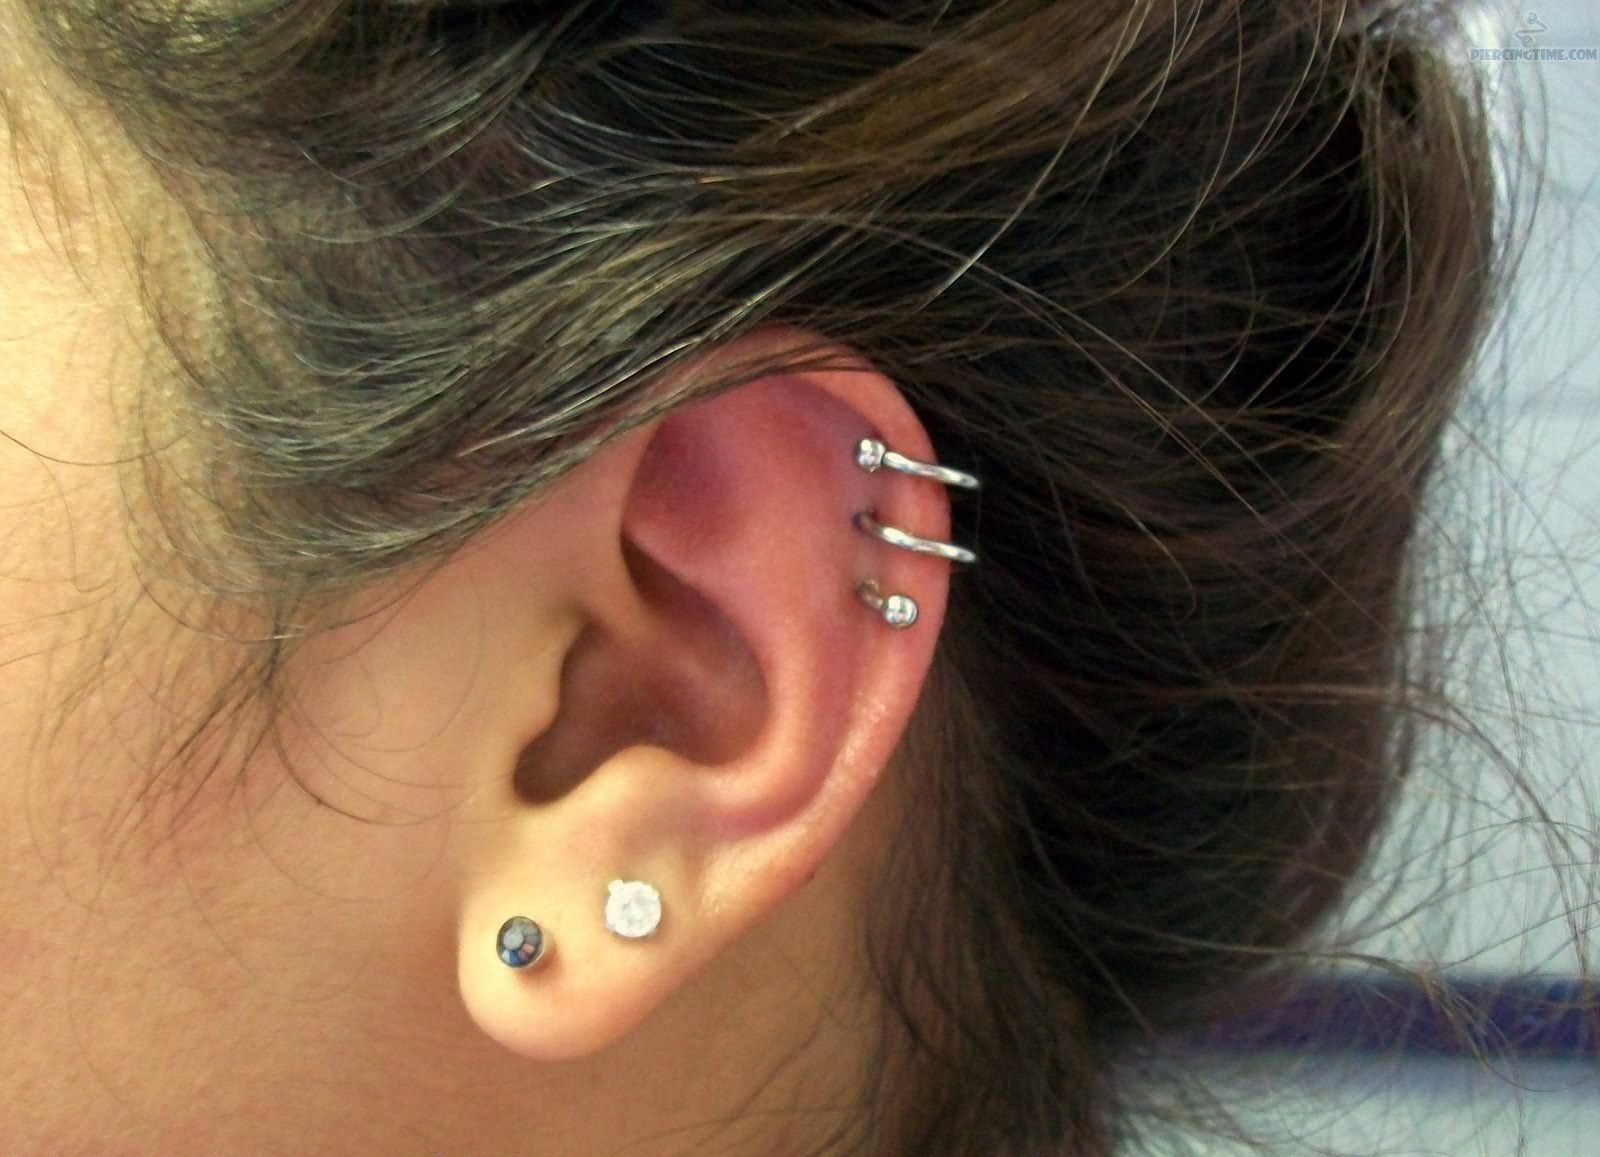 double cartilage piercings - yahoo image search results | tats +